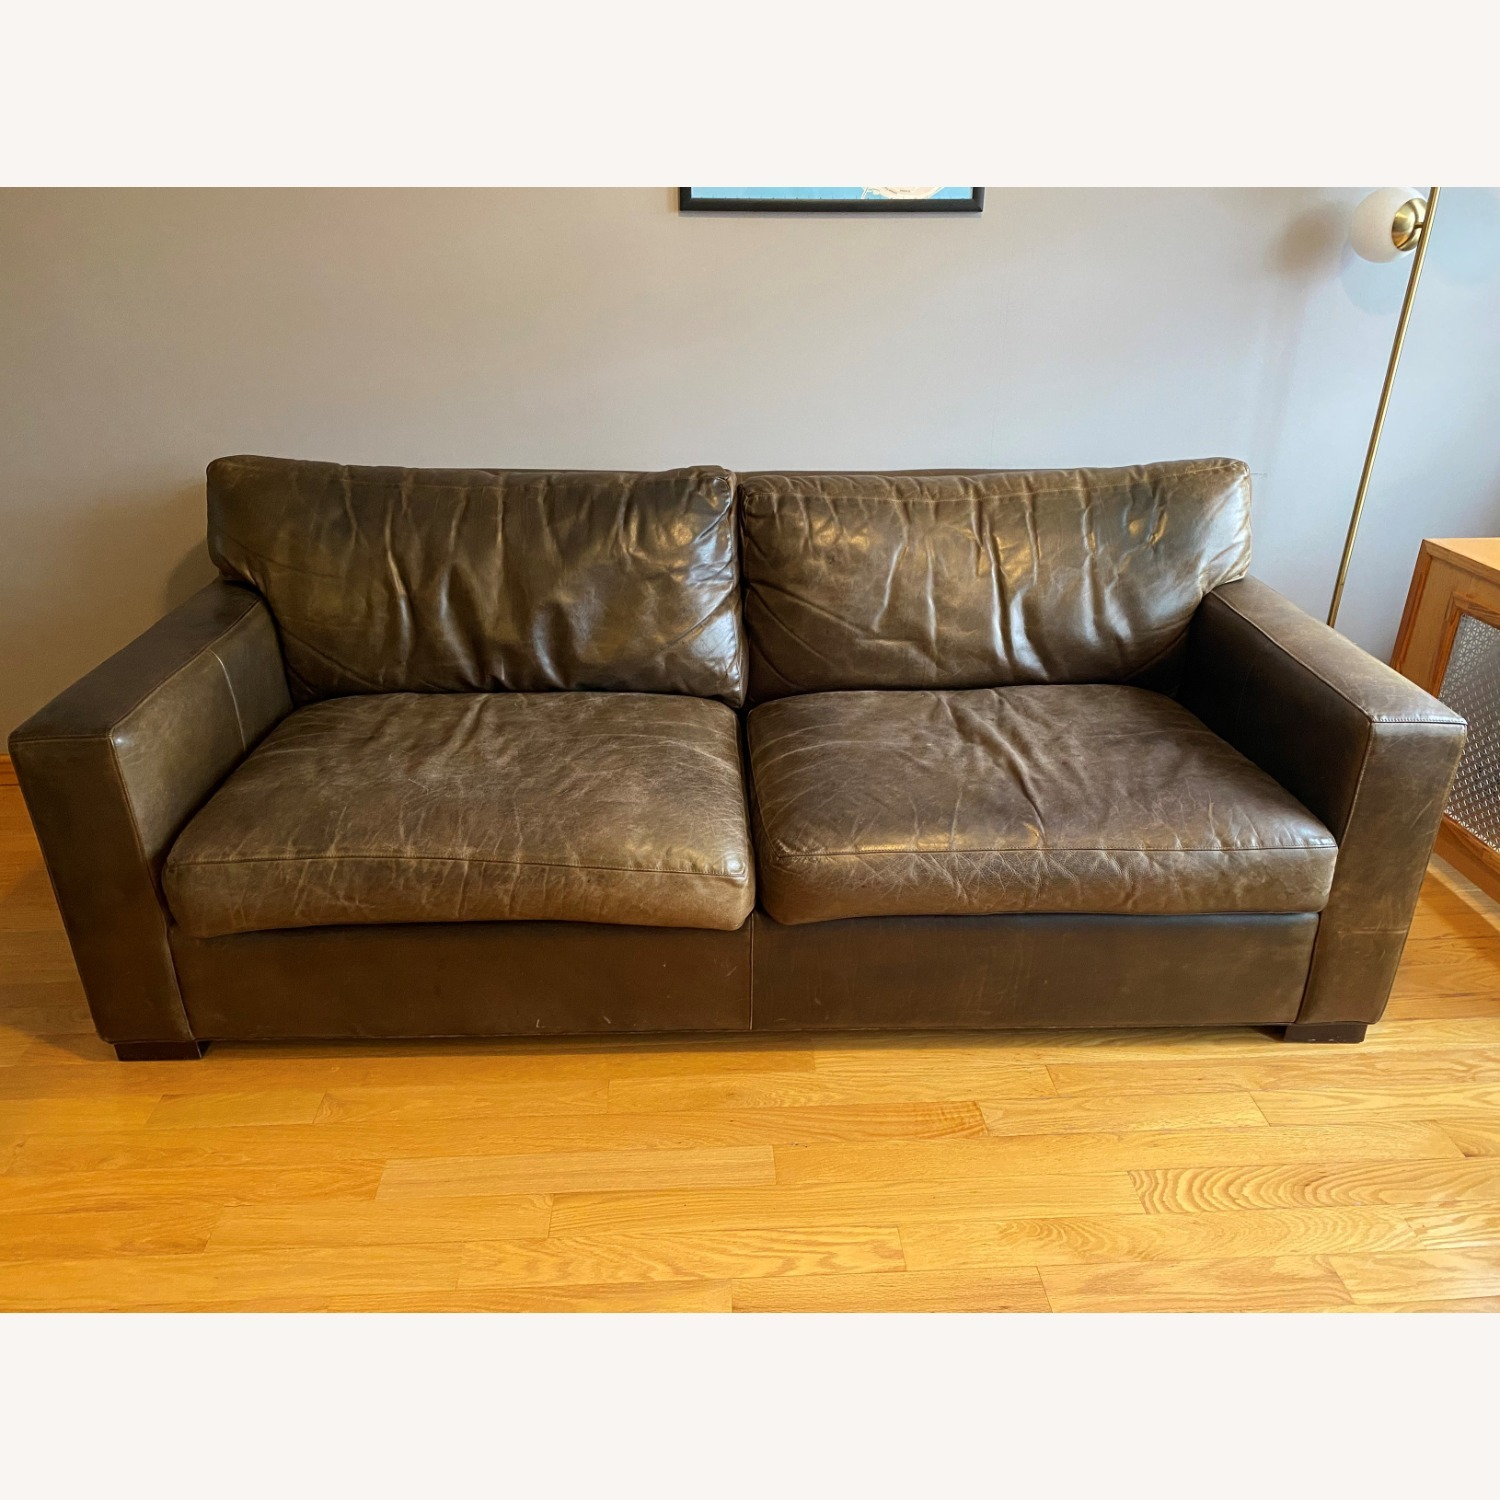 Crate and Barrel Axis Leather Sofa - image-1